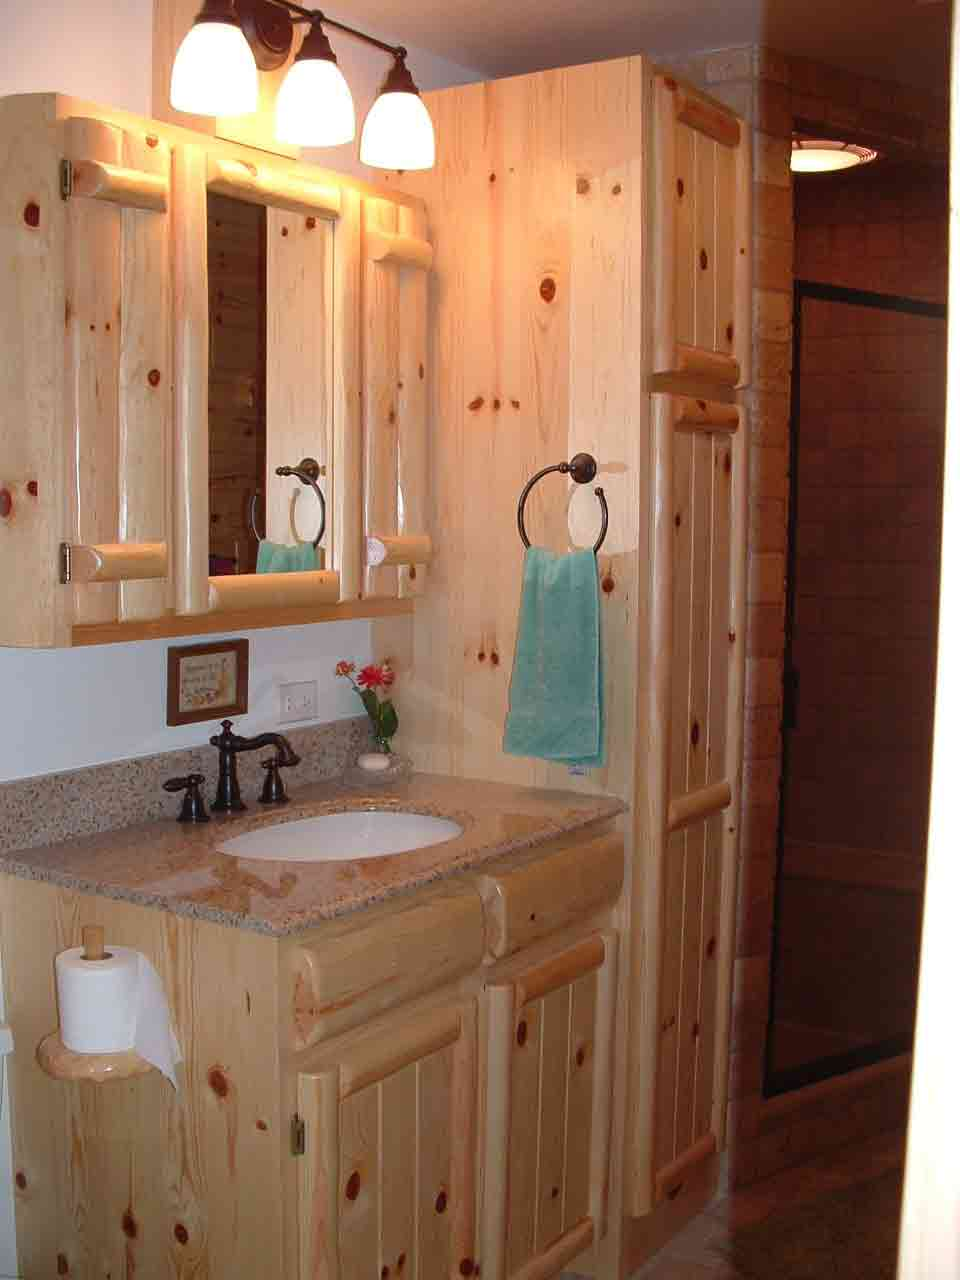 Custom Bathroom Vanities Michigan cabinetry - kitchens and baths | timber country cabinetry